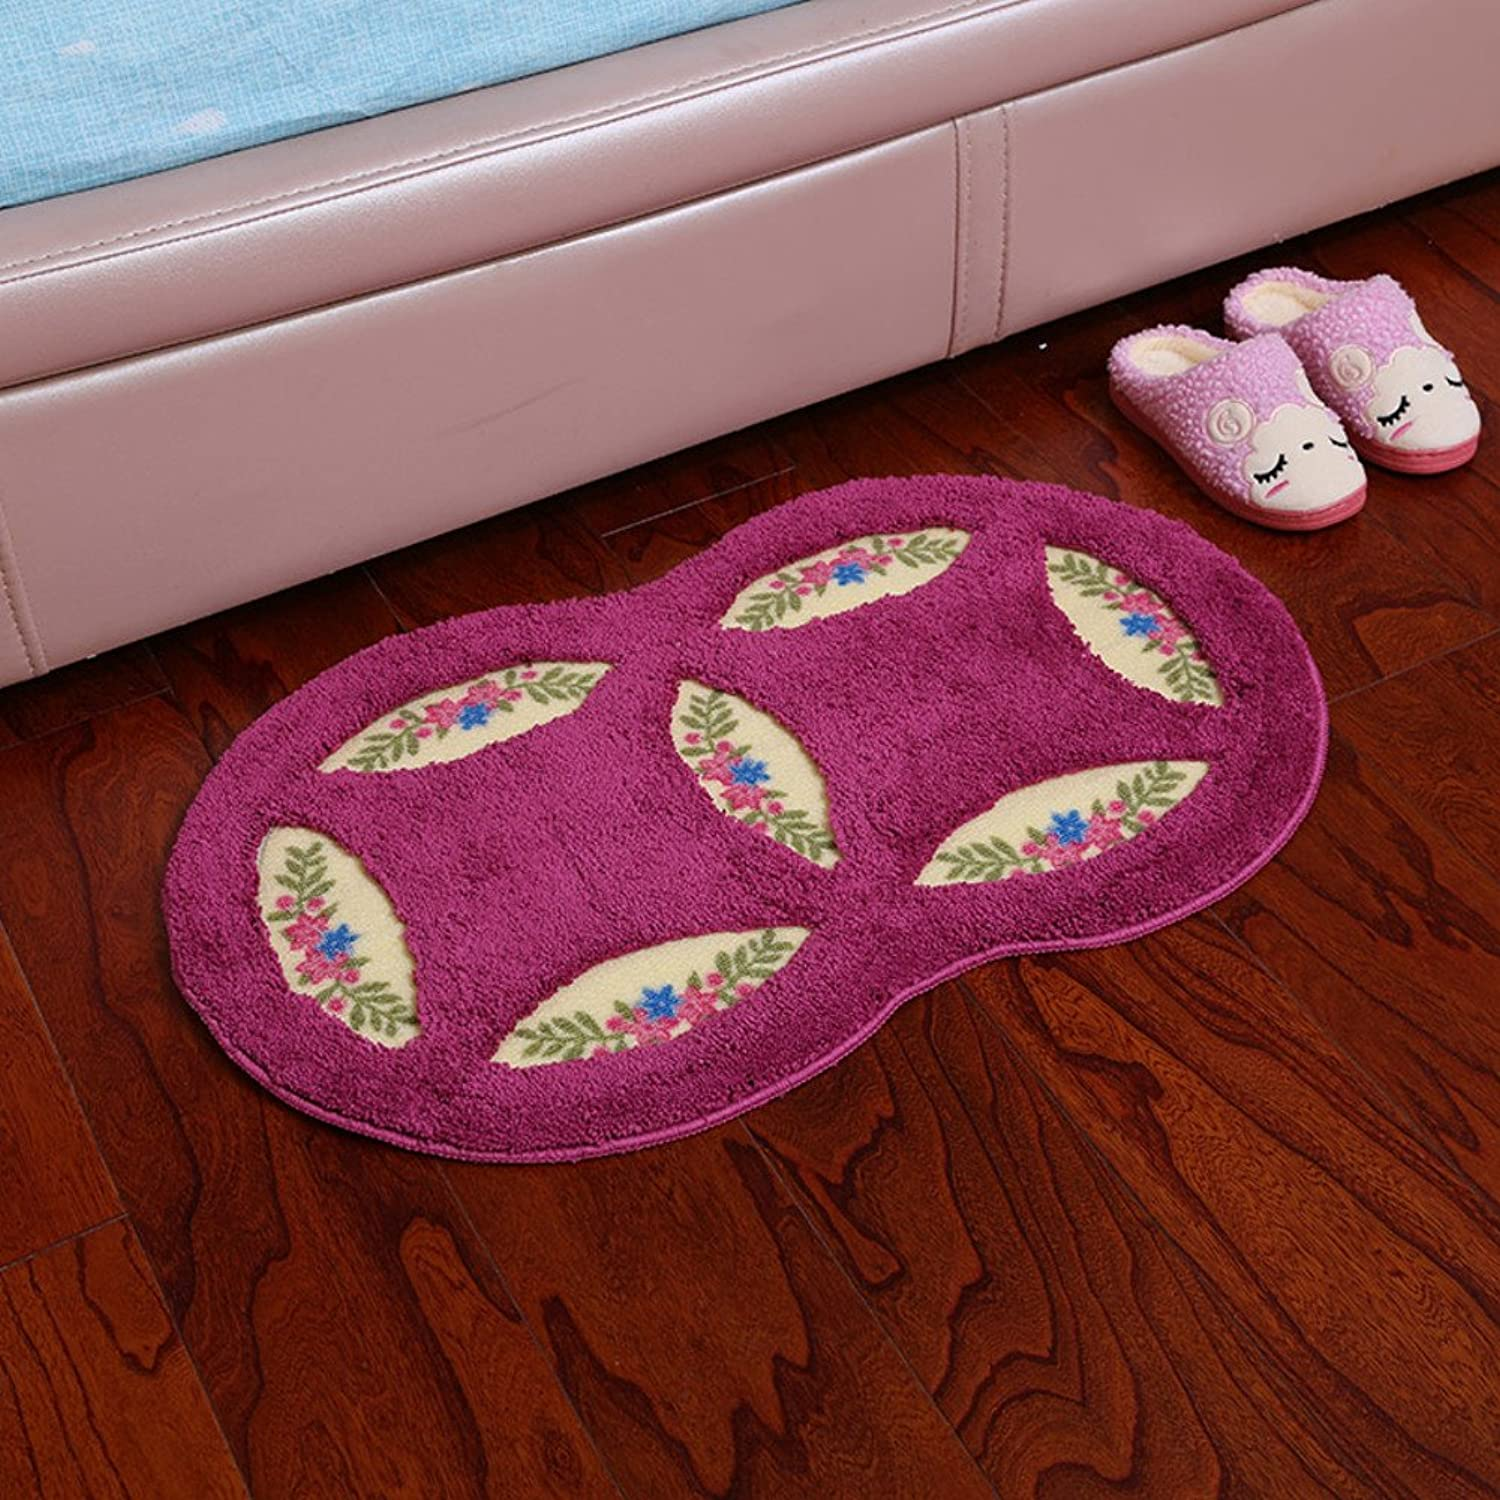 Bathroom Water-Absorption mat doormats Doormat Tatami mat Bedroom Bedside Kitchen Water Absorbent Anti-Slip mat Carpet-D 50x80cm(20x31inch)